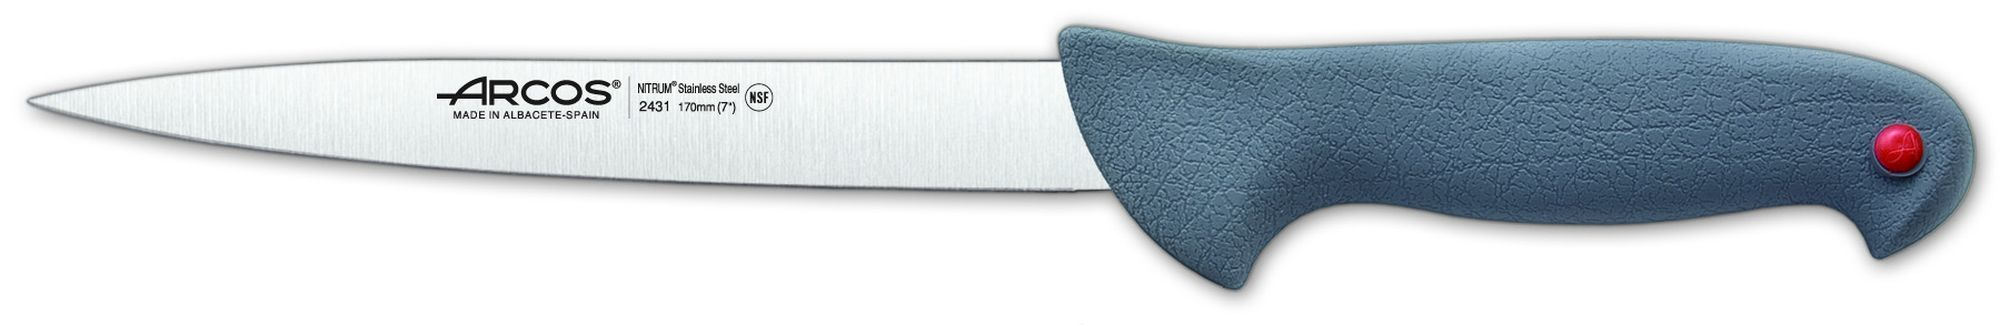 Cuchillo Lenguado - Flexible Arcos ref.: 243100